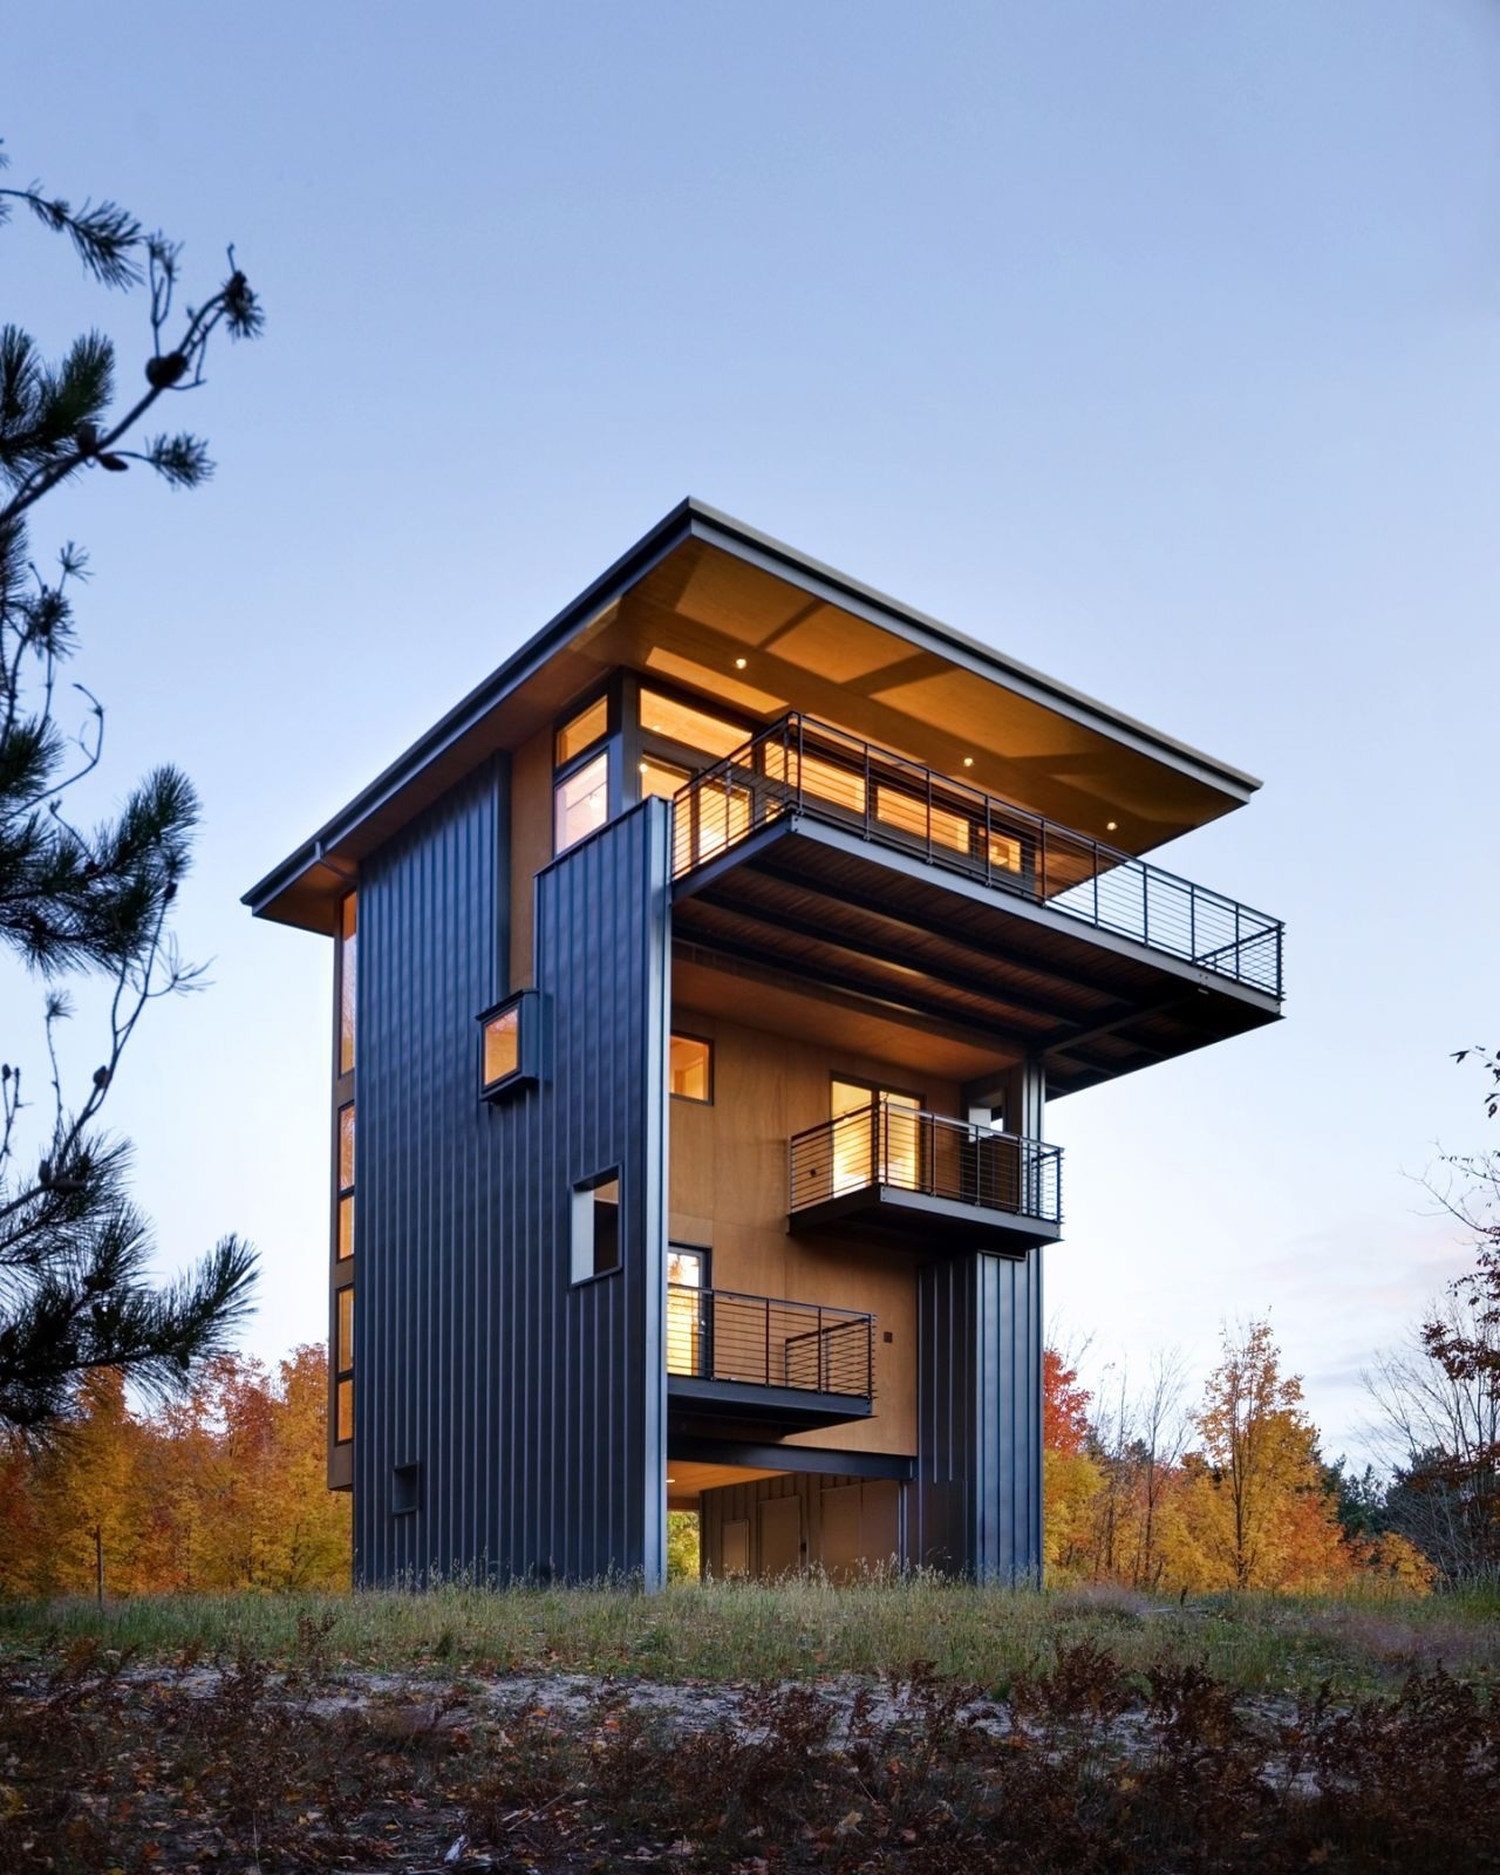 Glen lake tower by balance associates architects for Modern tower house designs